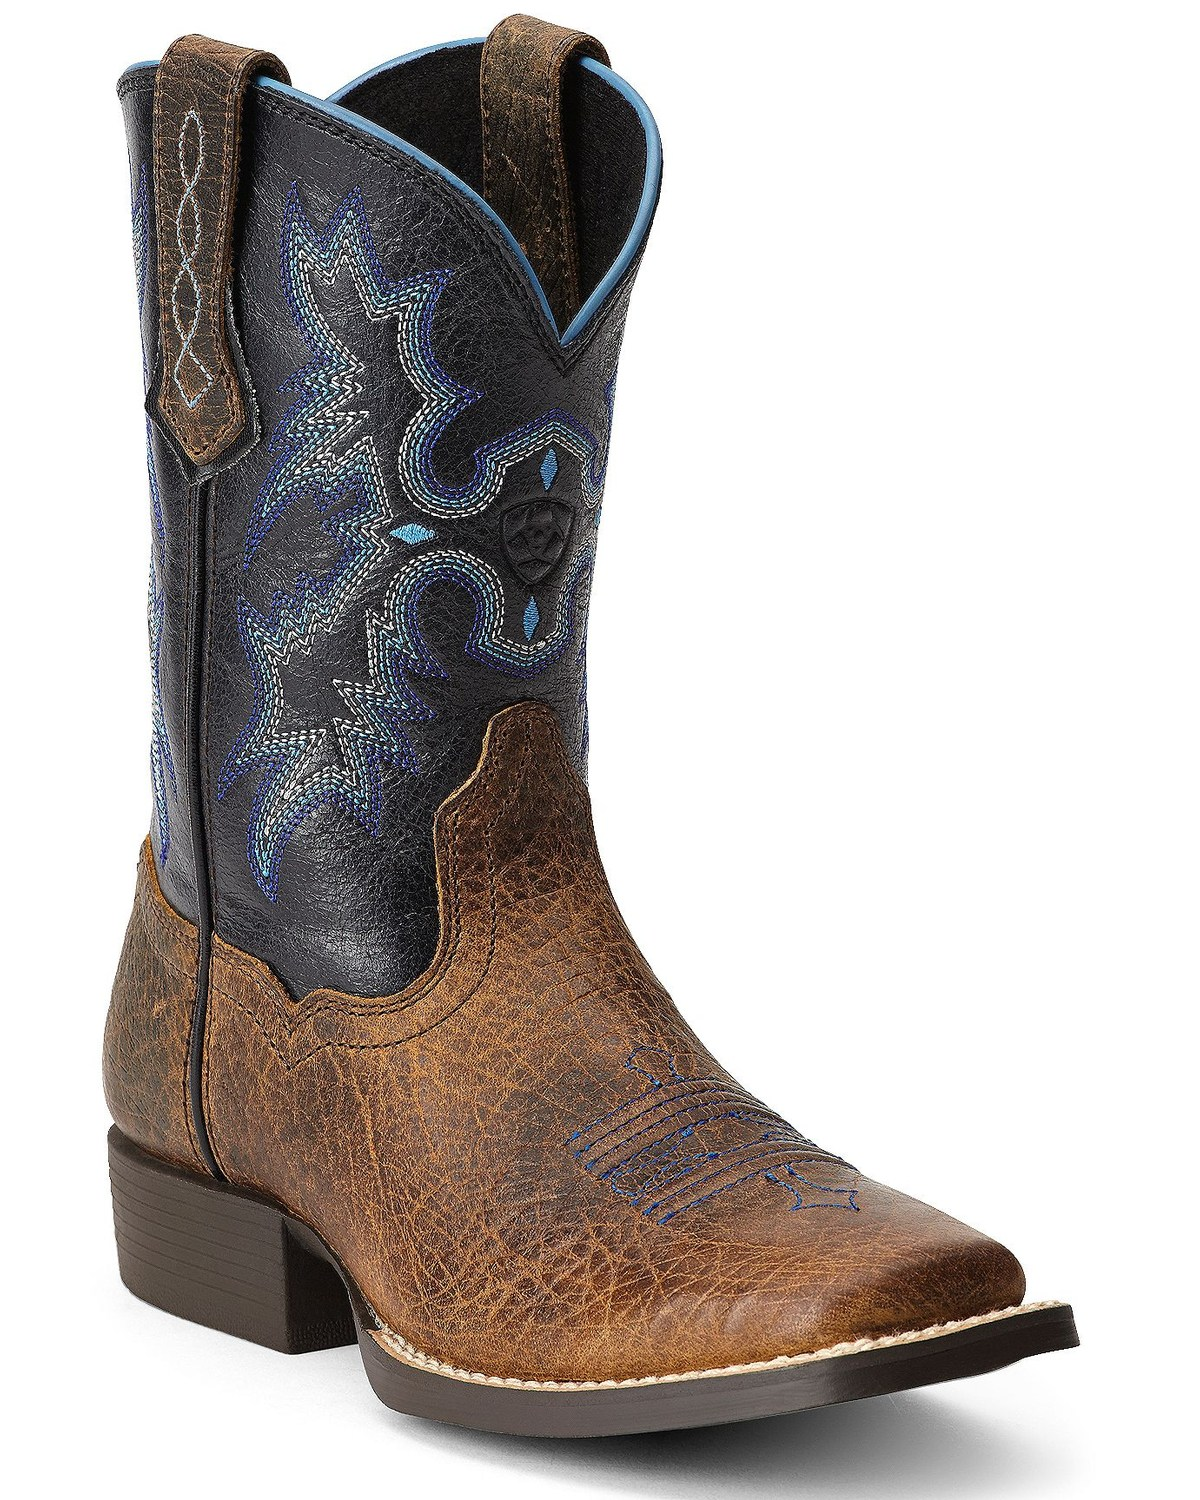 Ariat Boots For Kids